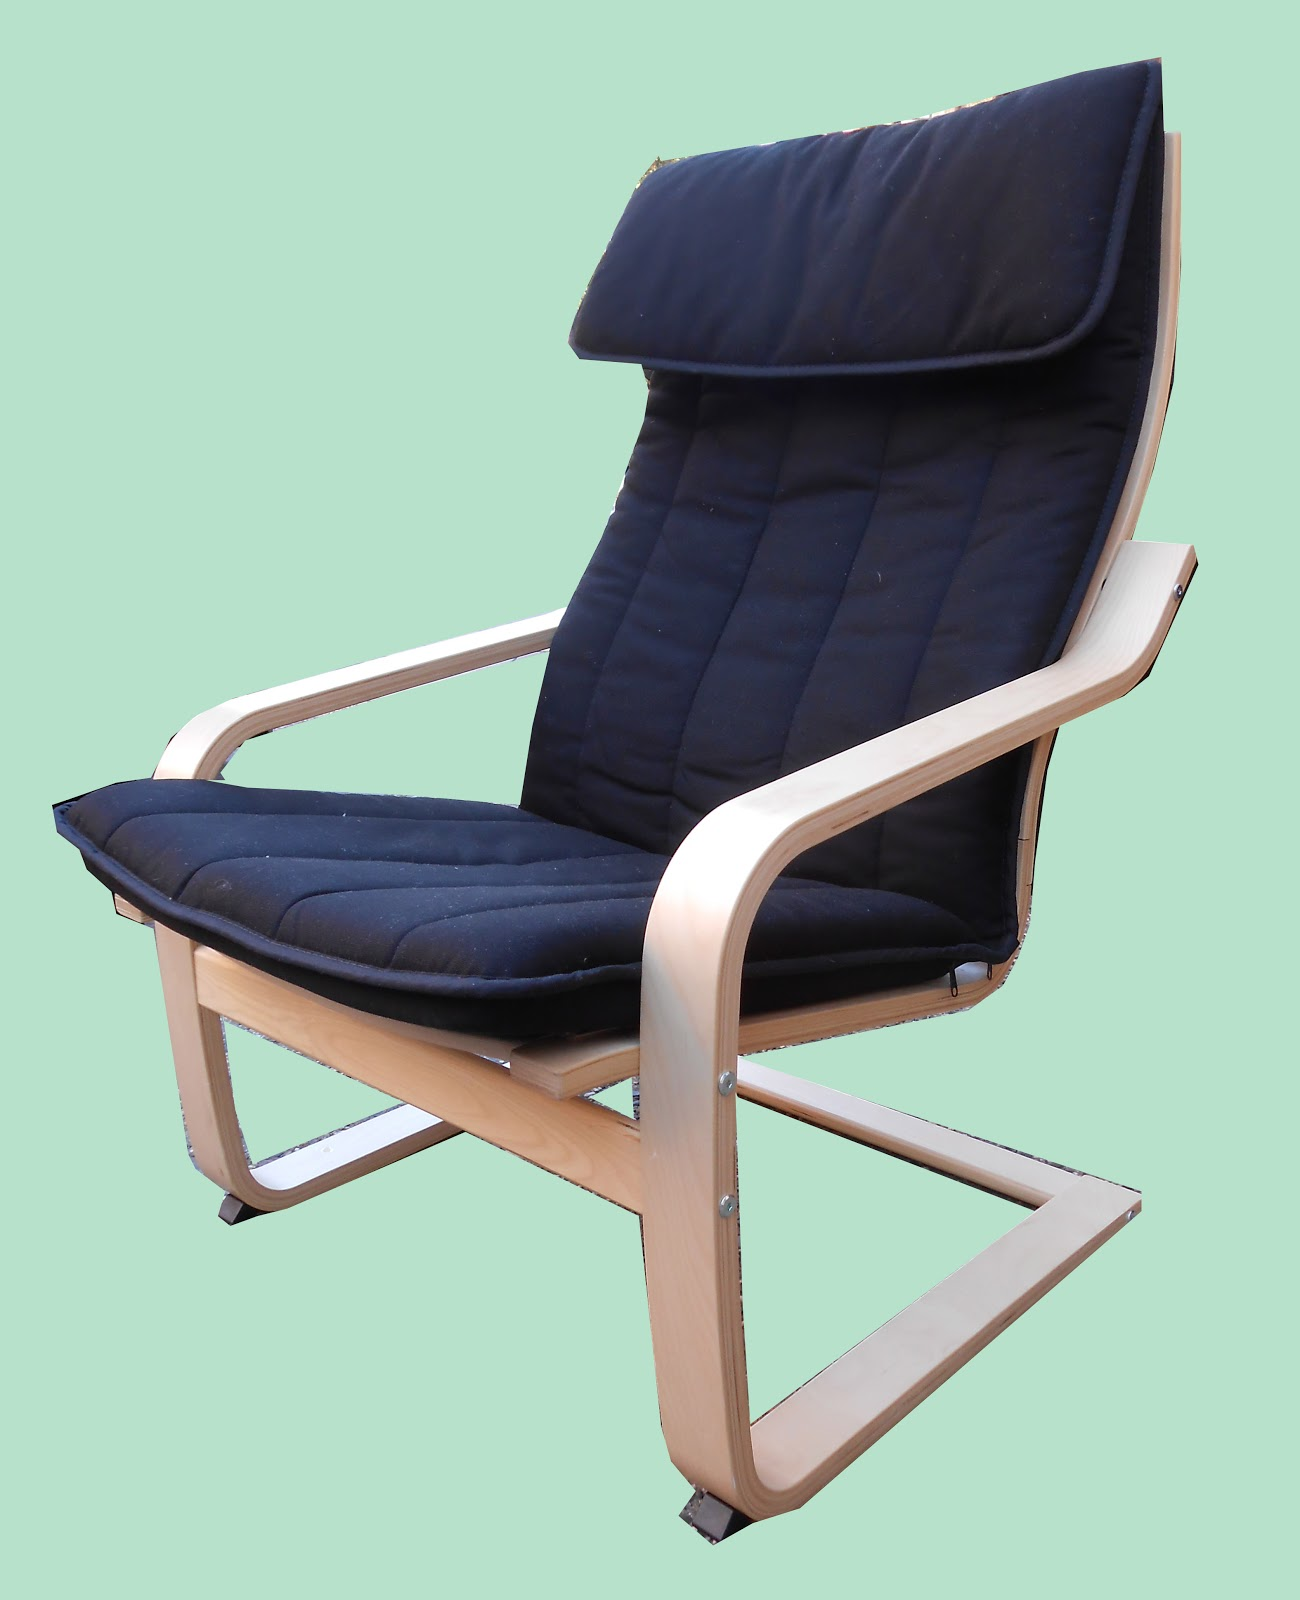 ikea lounge chair